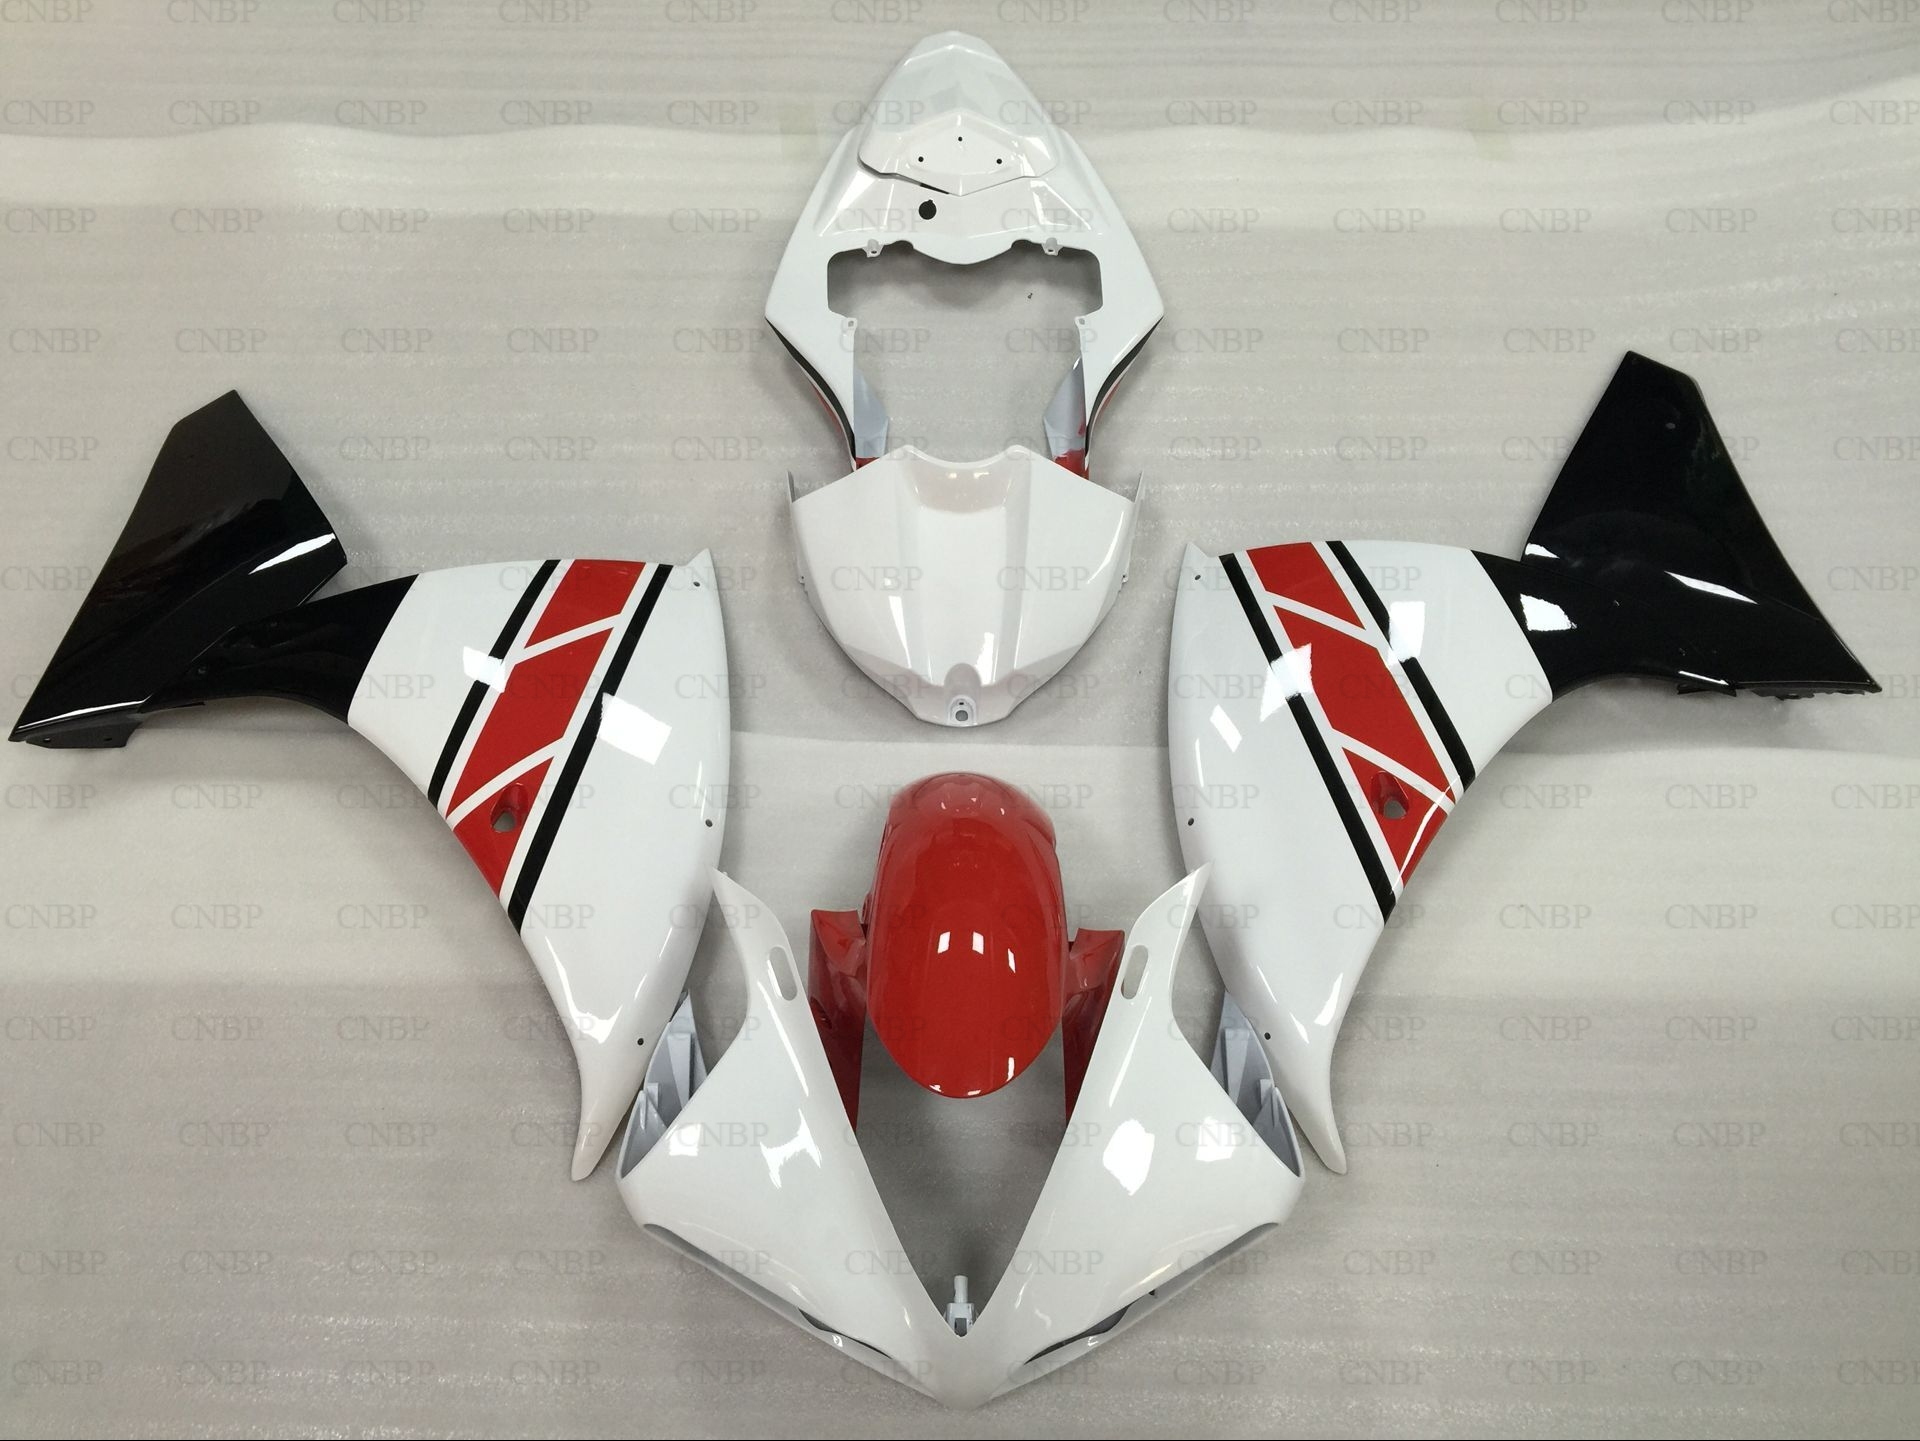 Fairing YZF R1 09 10 Motorcycle Fairing YZF1000 R1 2009 2009 - 2011 White Red Black Fairing Kits YZFR1 2009 hot sales for yamaha r1 fairings yzfr1 2007 2008 yzf r1 yzf r1 yzf1000 r1 07 08 red black abs fairings injection molding